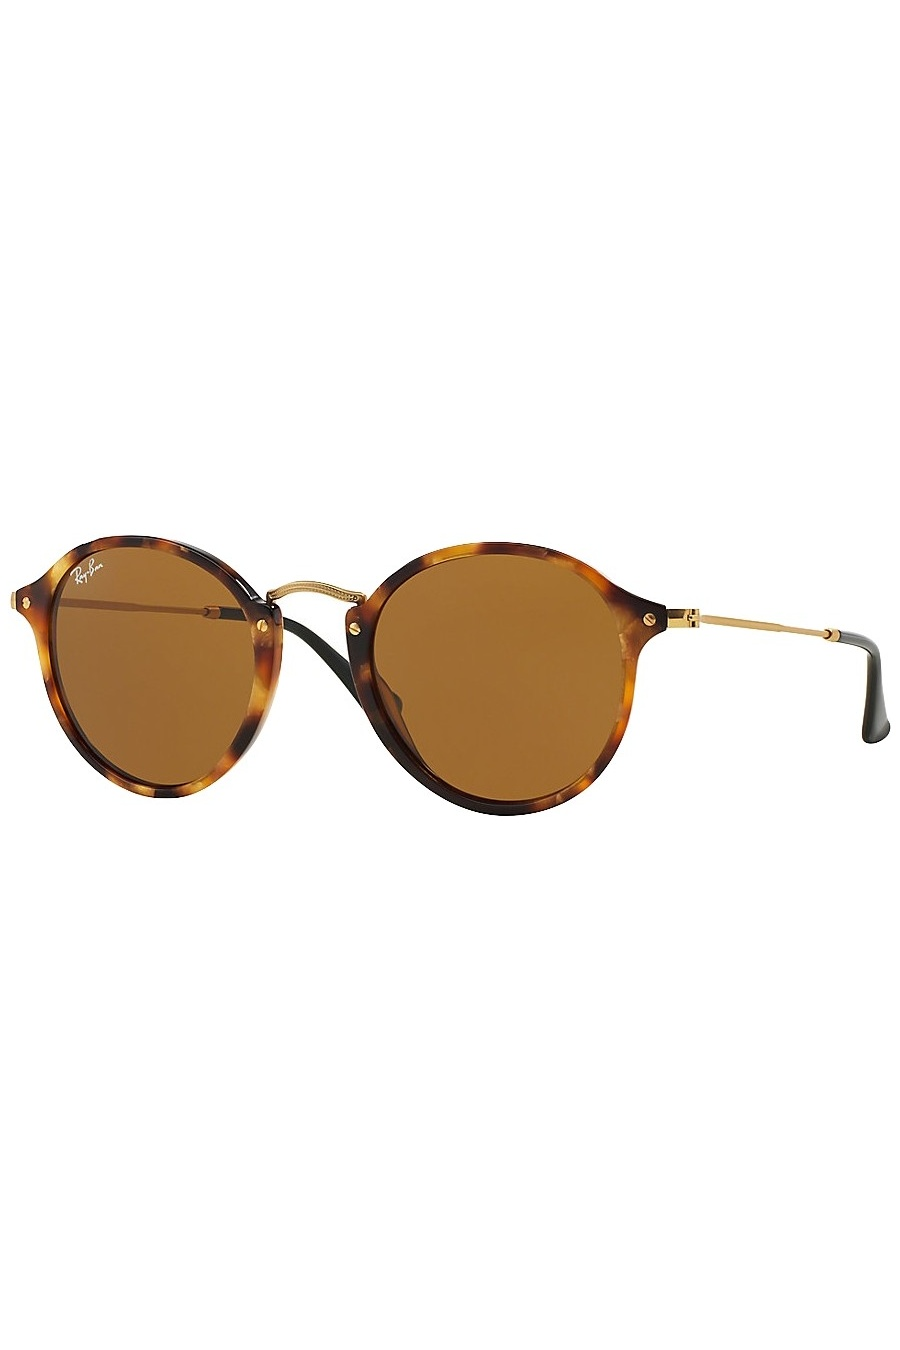 RAY-BAN RB2447 - 1160 49 ROUND FLECK